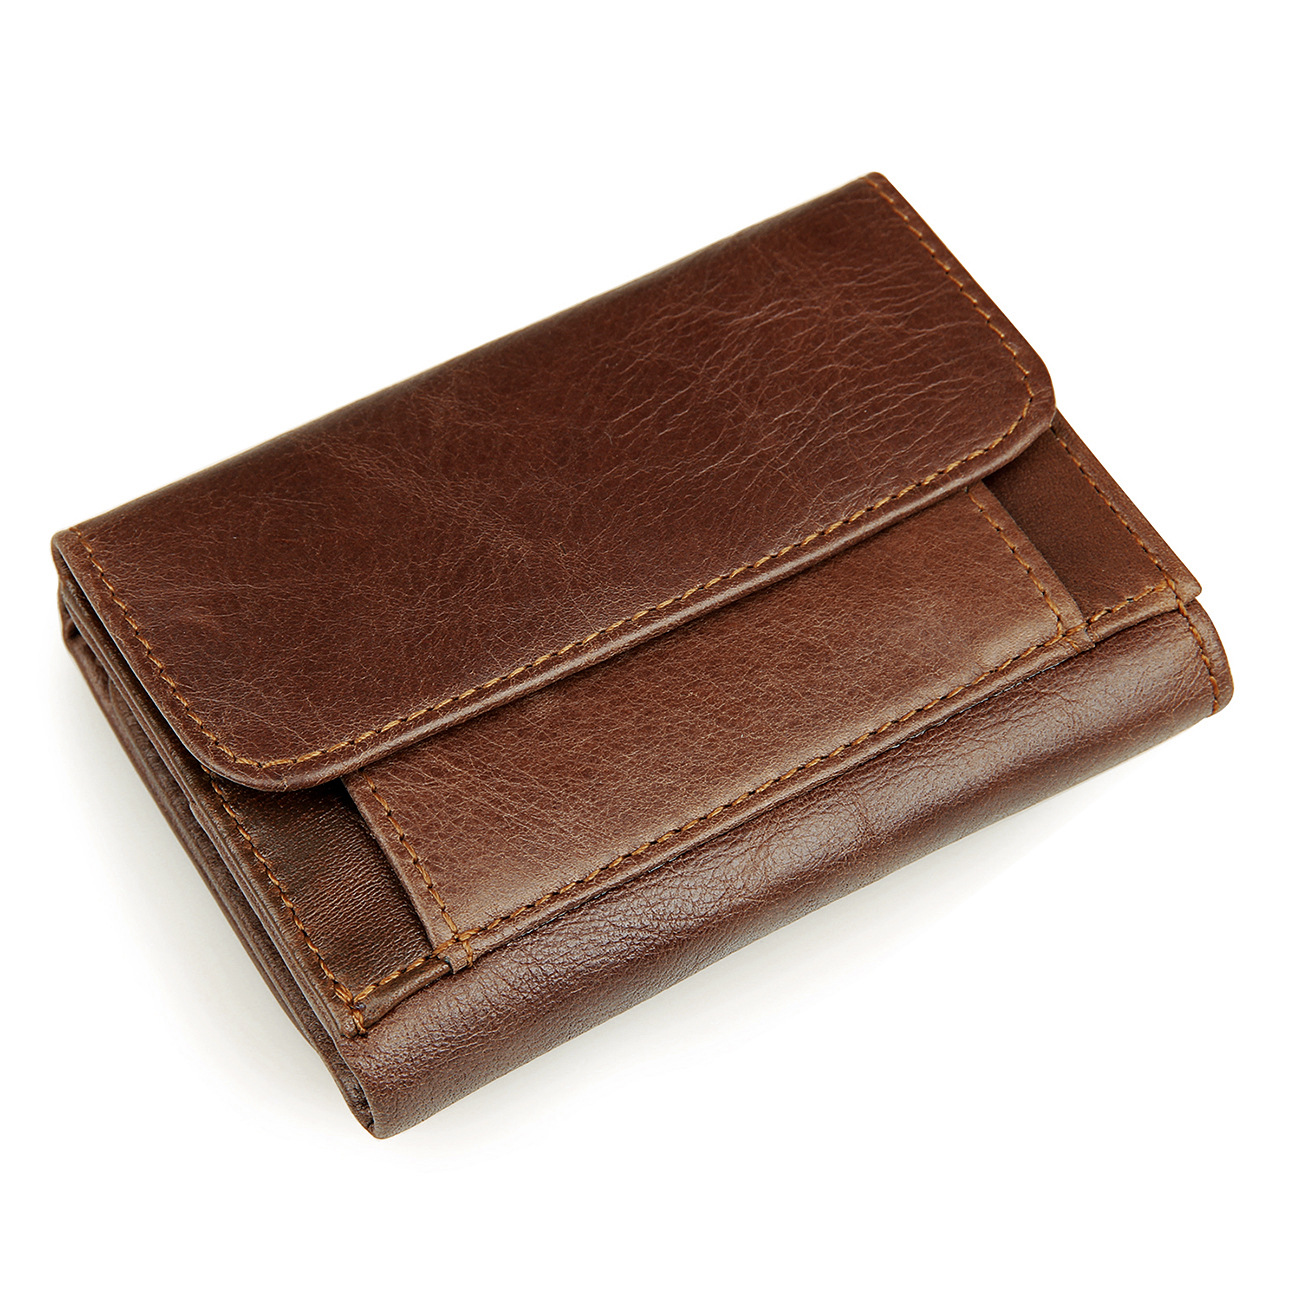 New Short Wallets Men Genuine Leather 3 Fold Short Wallet Oil Leather Vintage Man Purses RFID Money Clips Natural Cow Leather